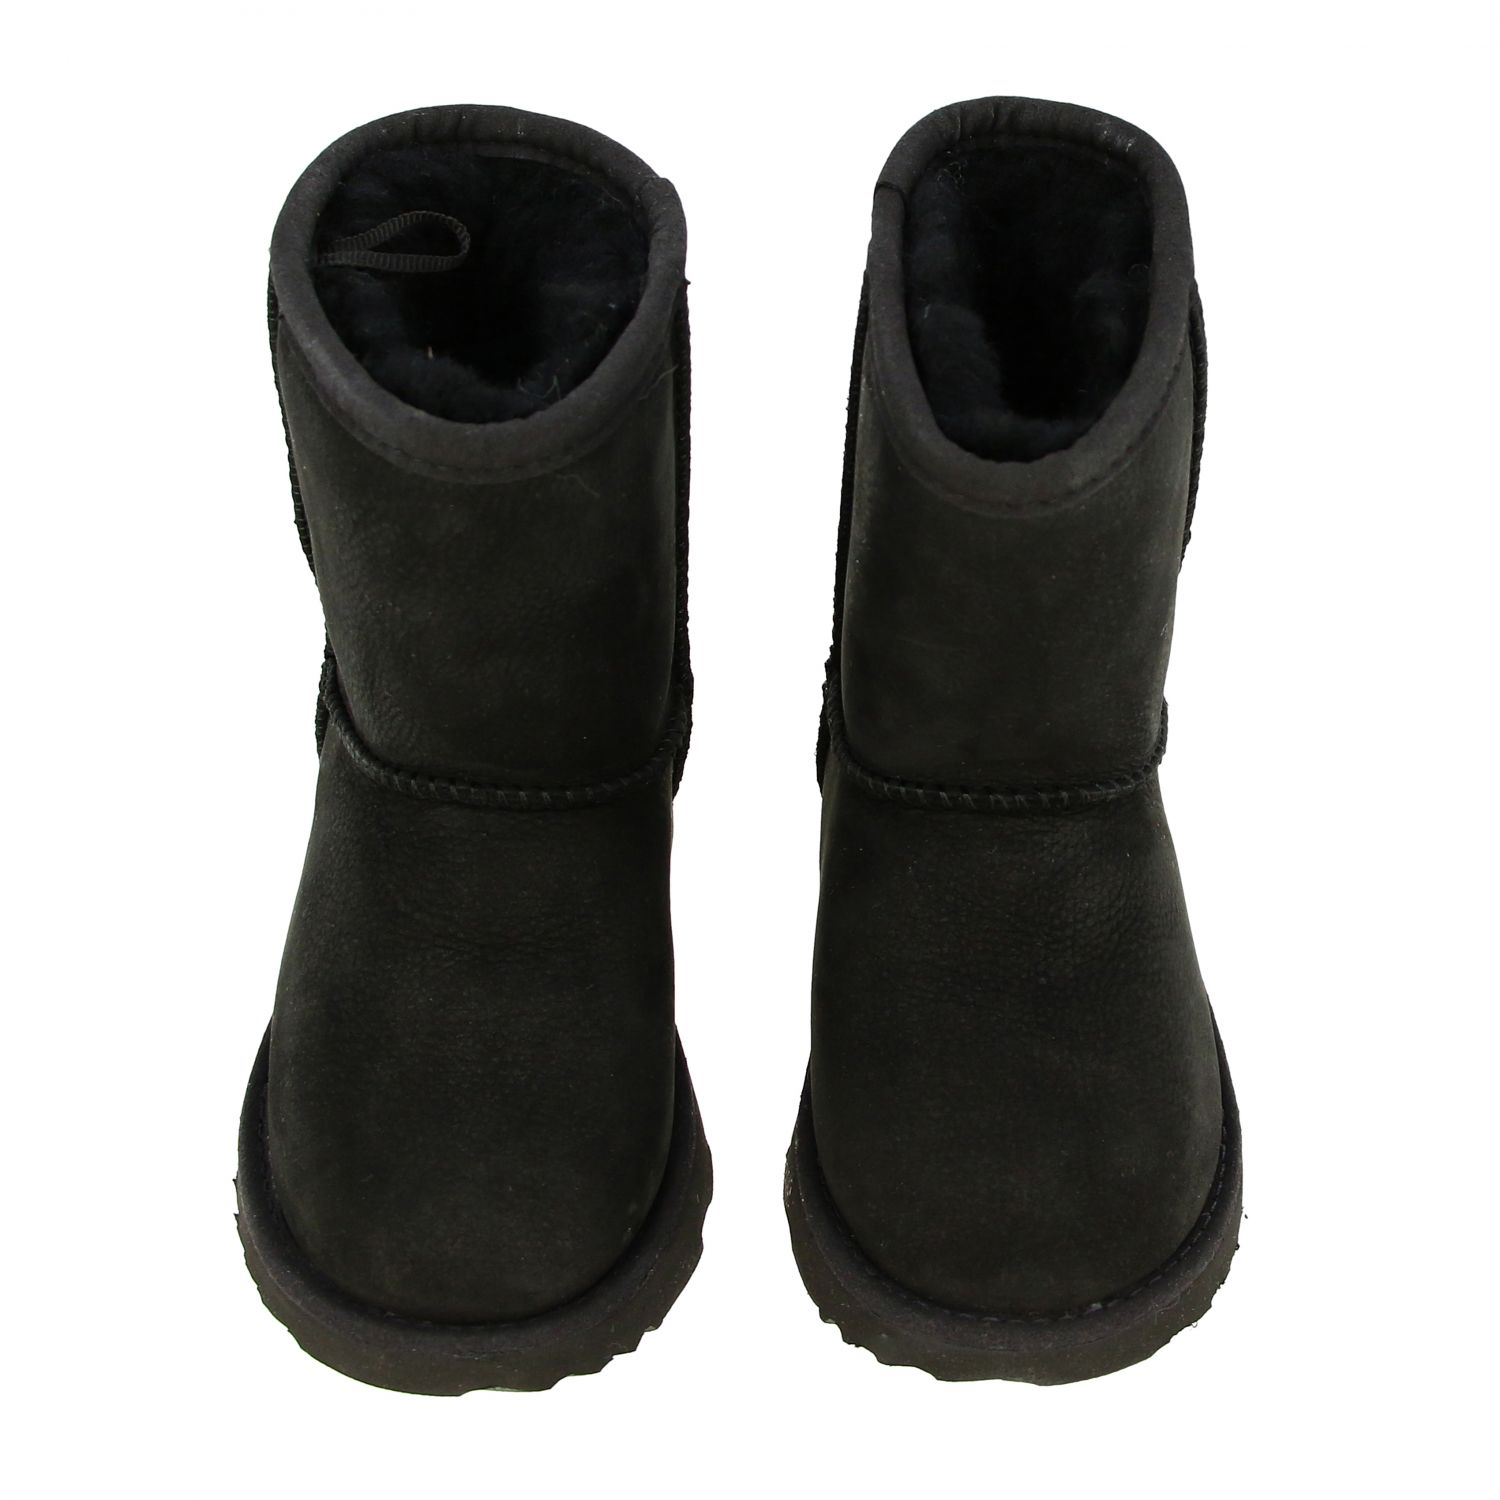 Shoes kids Ugg Australia black 3